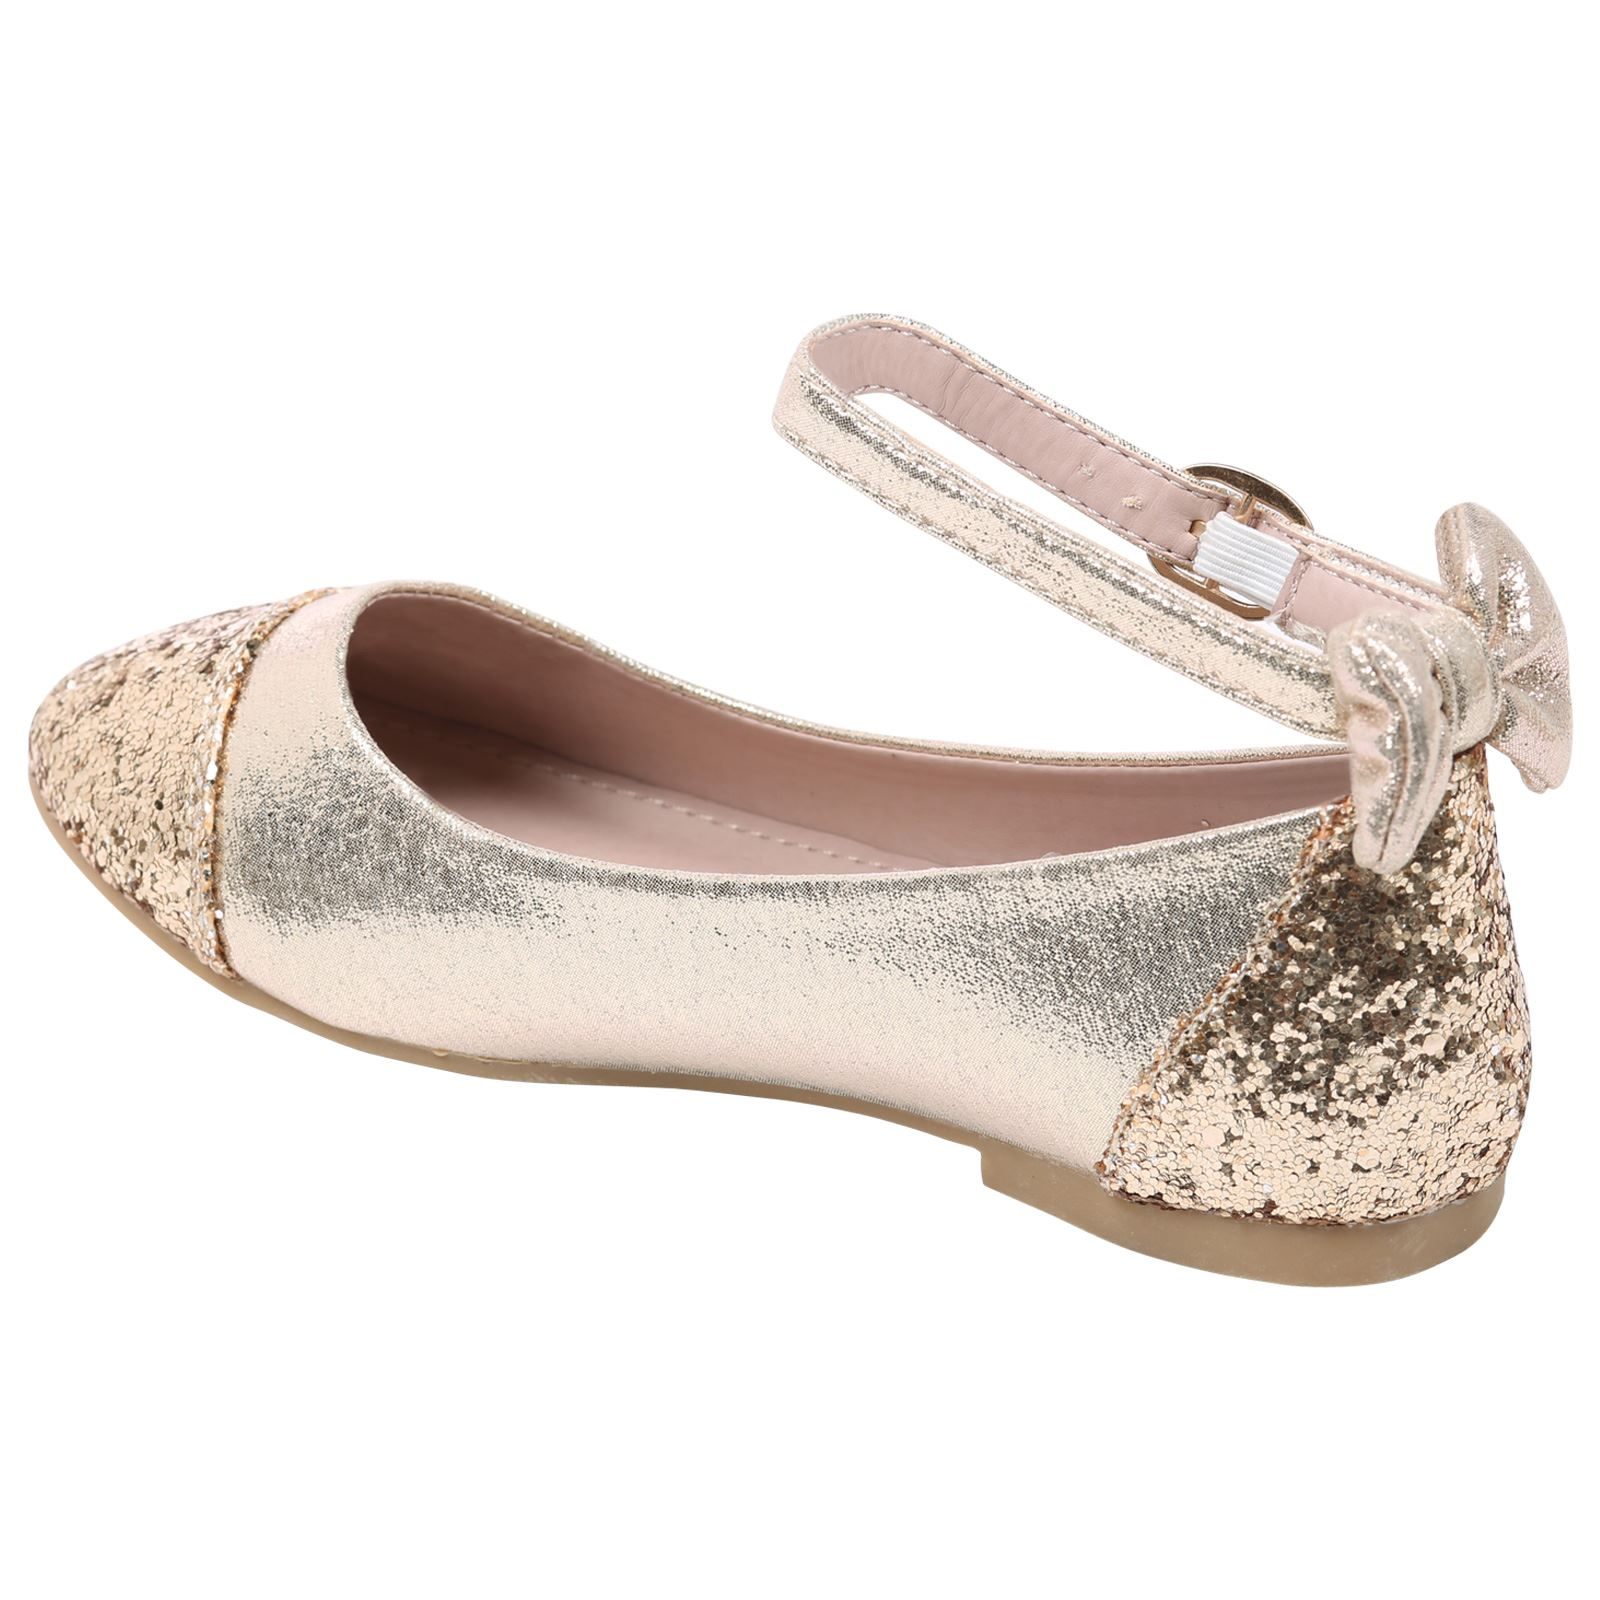 Women's Flats & Ballet Flats | NordstromBrands: Aquatalia, Munro, Paul Green, Fly London, Jeffrey Campbell.